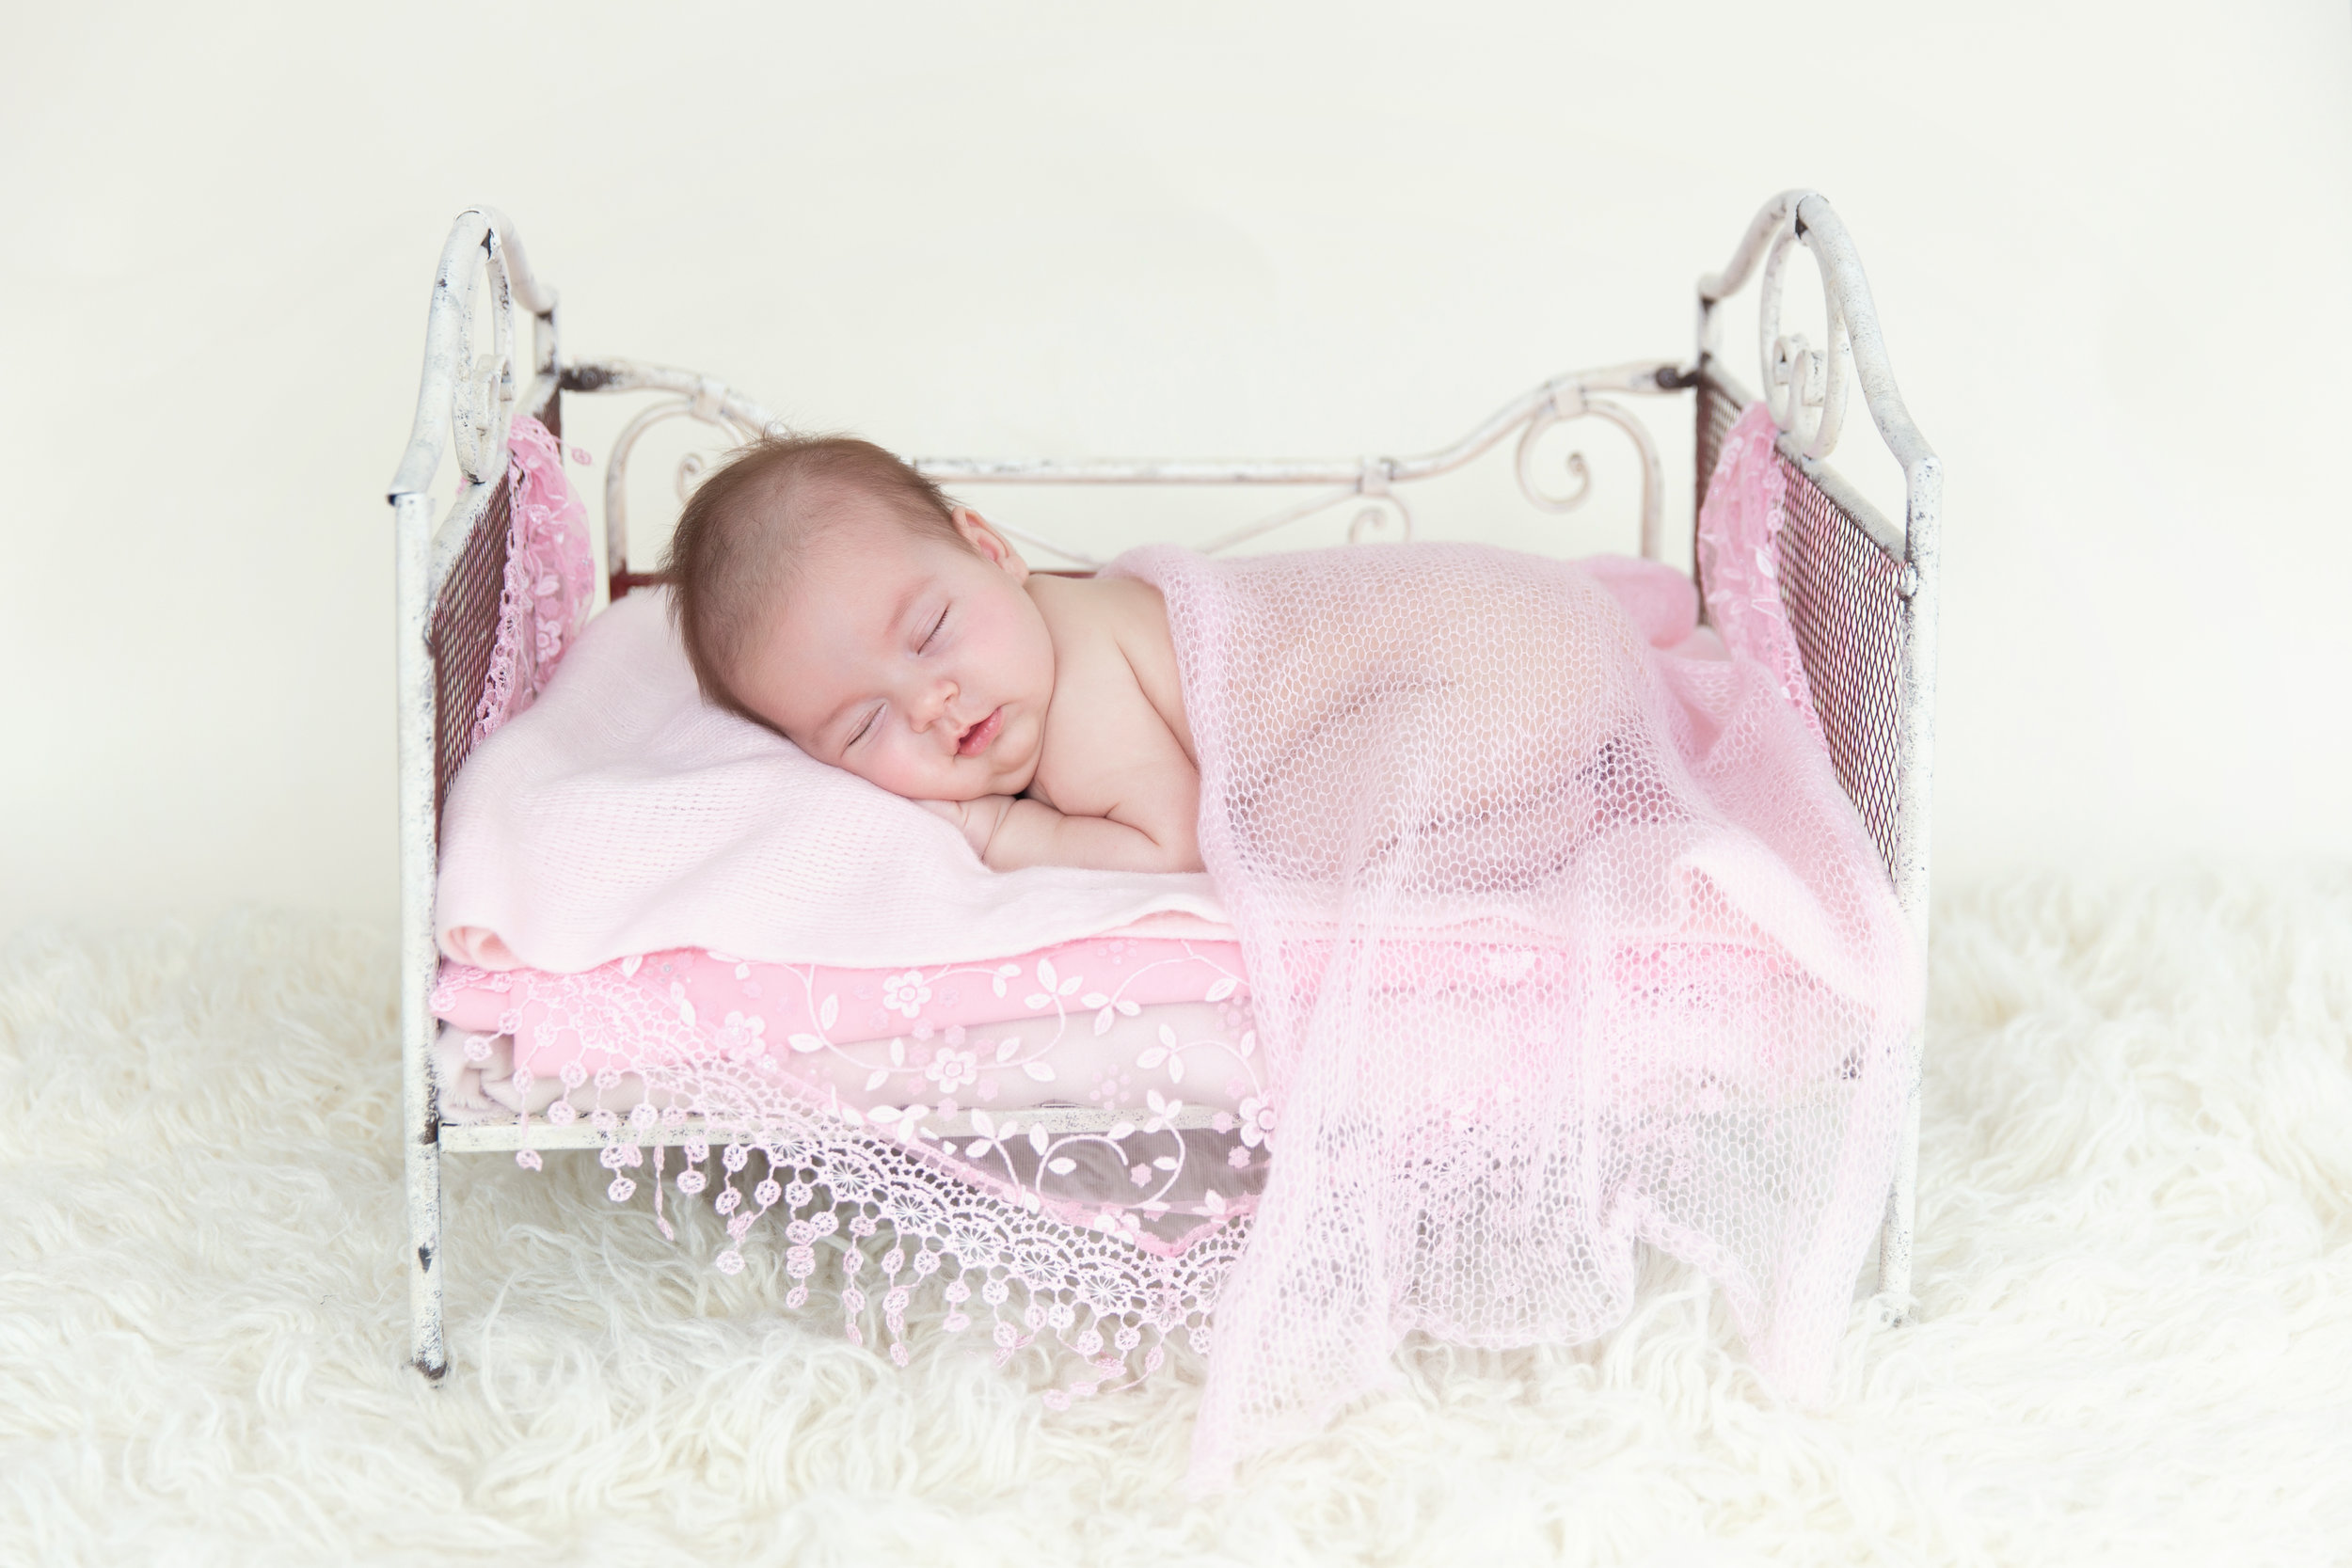 Newborn baby girl, smiling in her sleep, lying on an antique bed prop. Calgary and Airdrie Newborn Photographer.